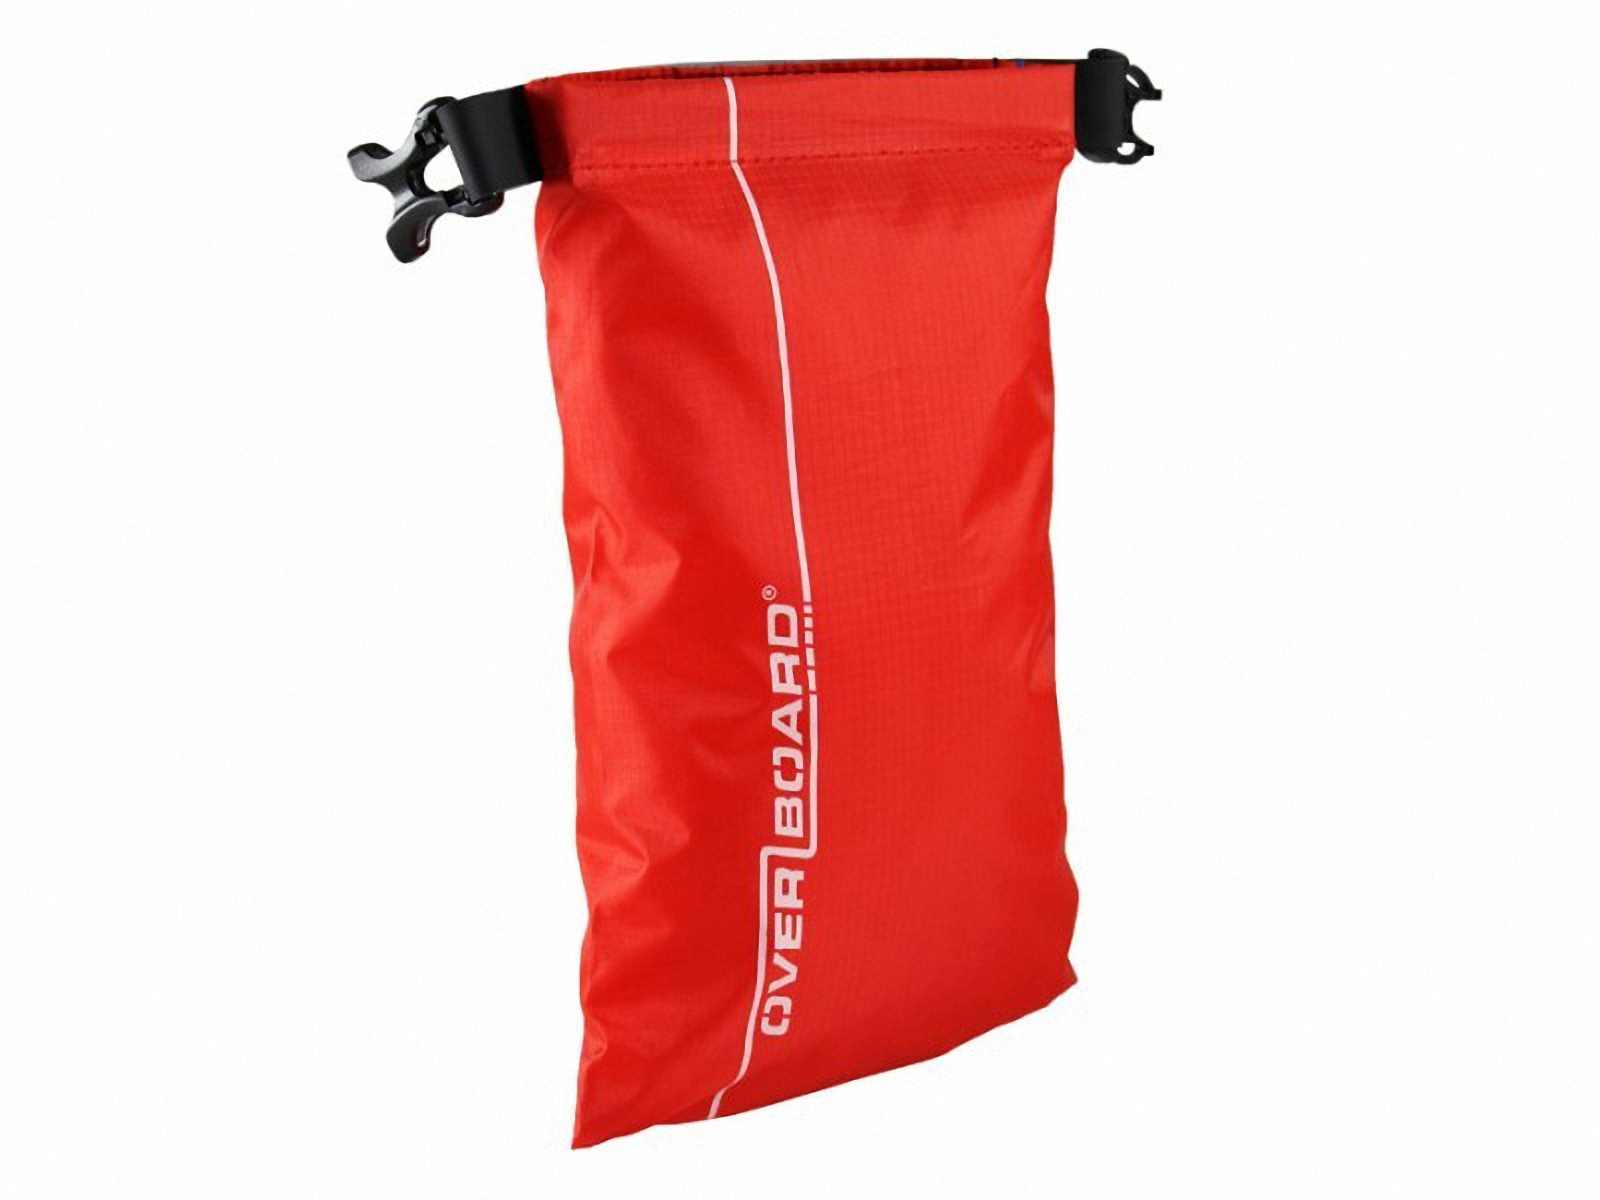 Водонепроницаемый гермомешок OverBoard OB1031R - Waterproof Dry Pouch - 1L (Red) Фото 3